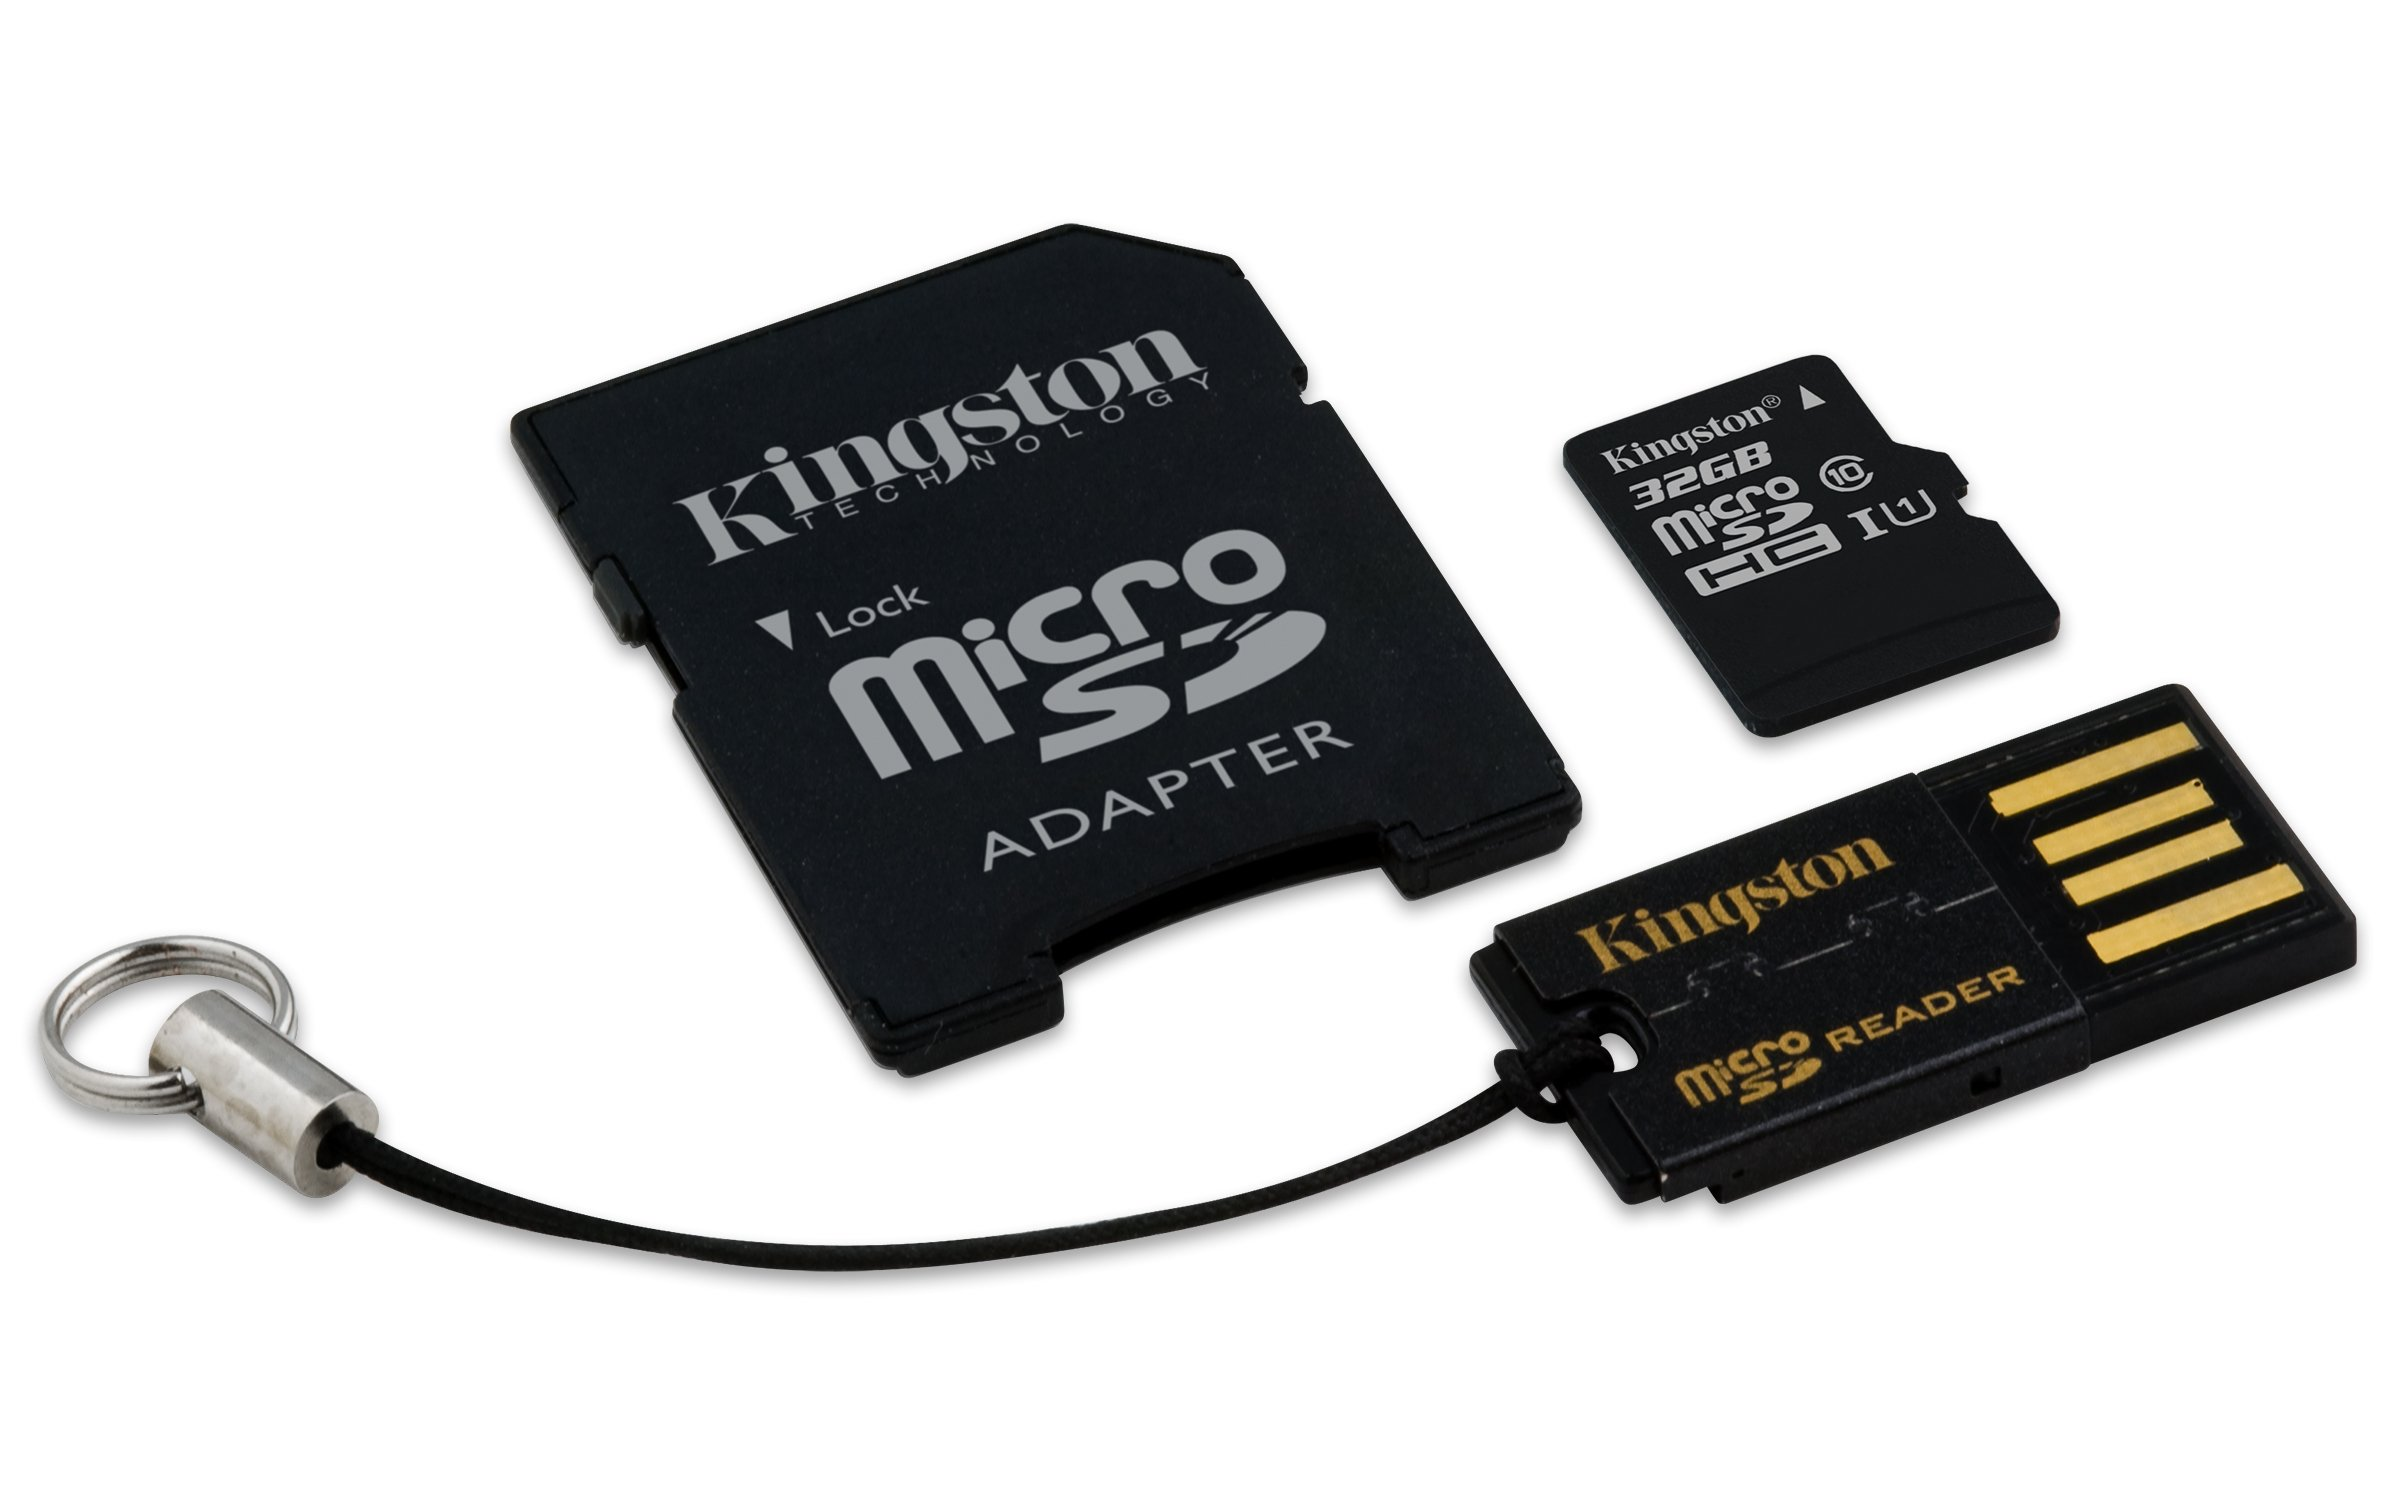 Kingston Digital Mobility Kit Includes 32 GB Flash Memory Card Reader (MBLY10G2/32GB) by Kingston (Image #3)